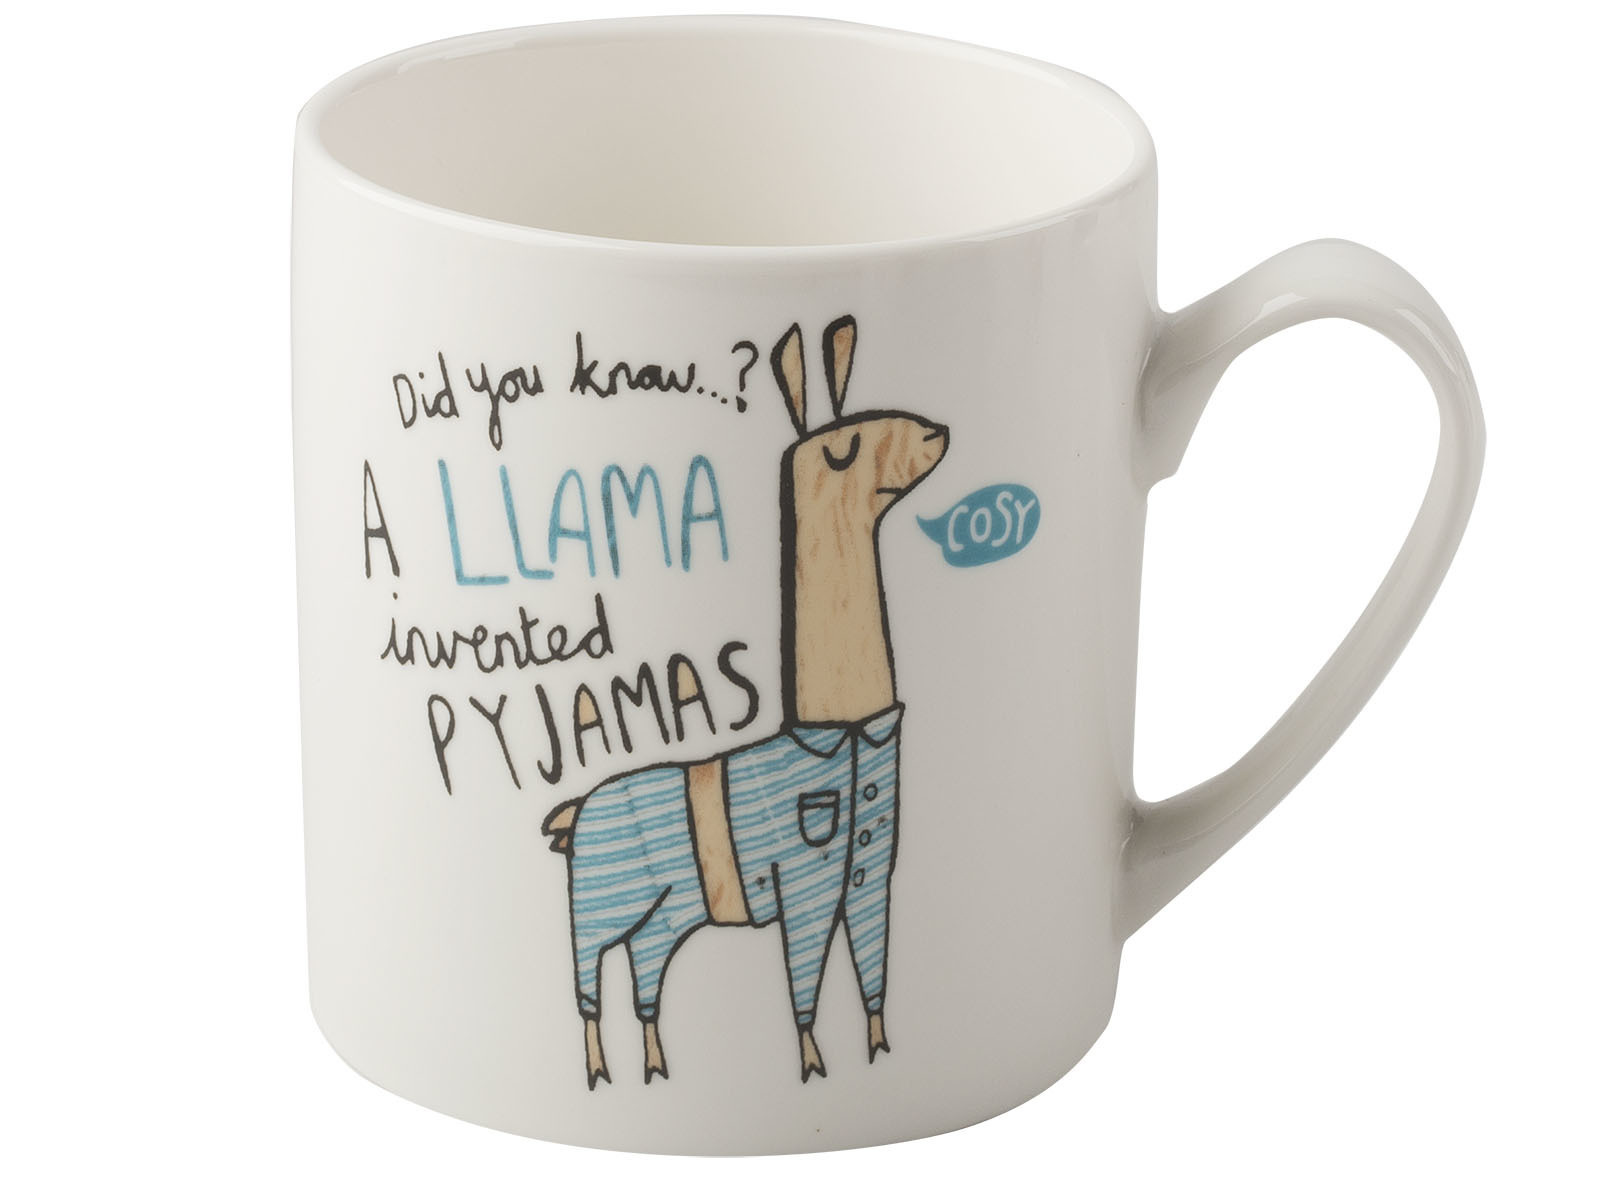 Everyday Home Llama Can Mug